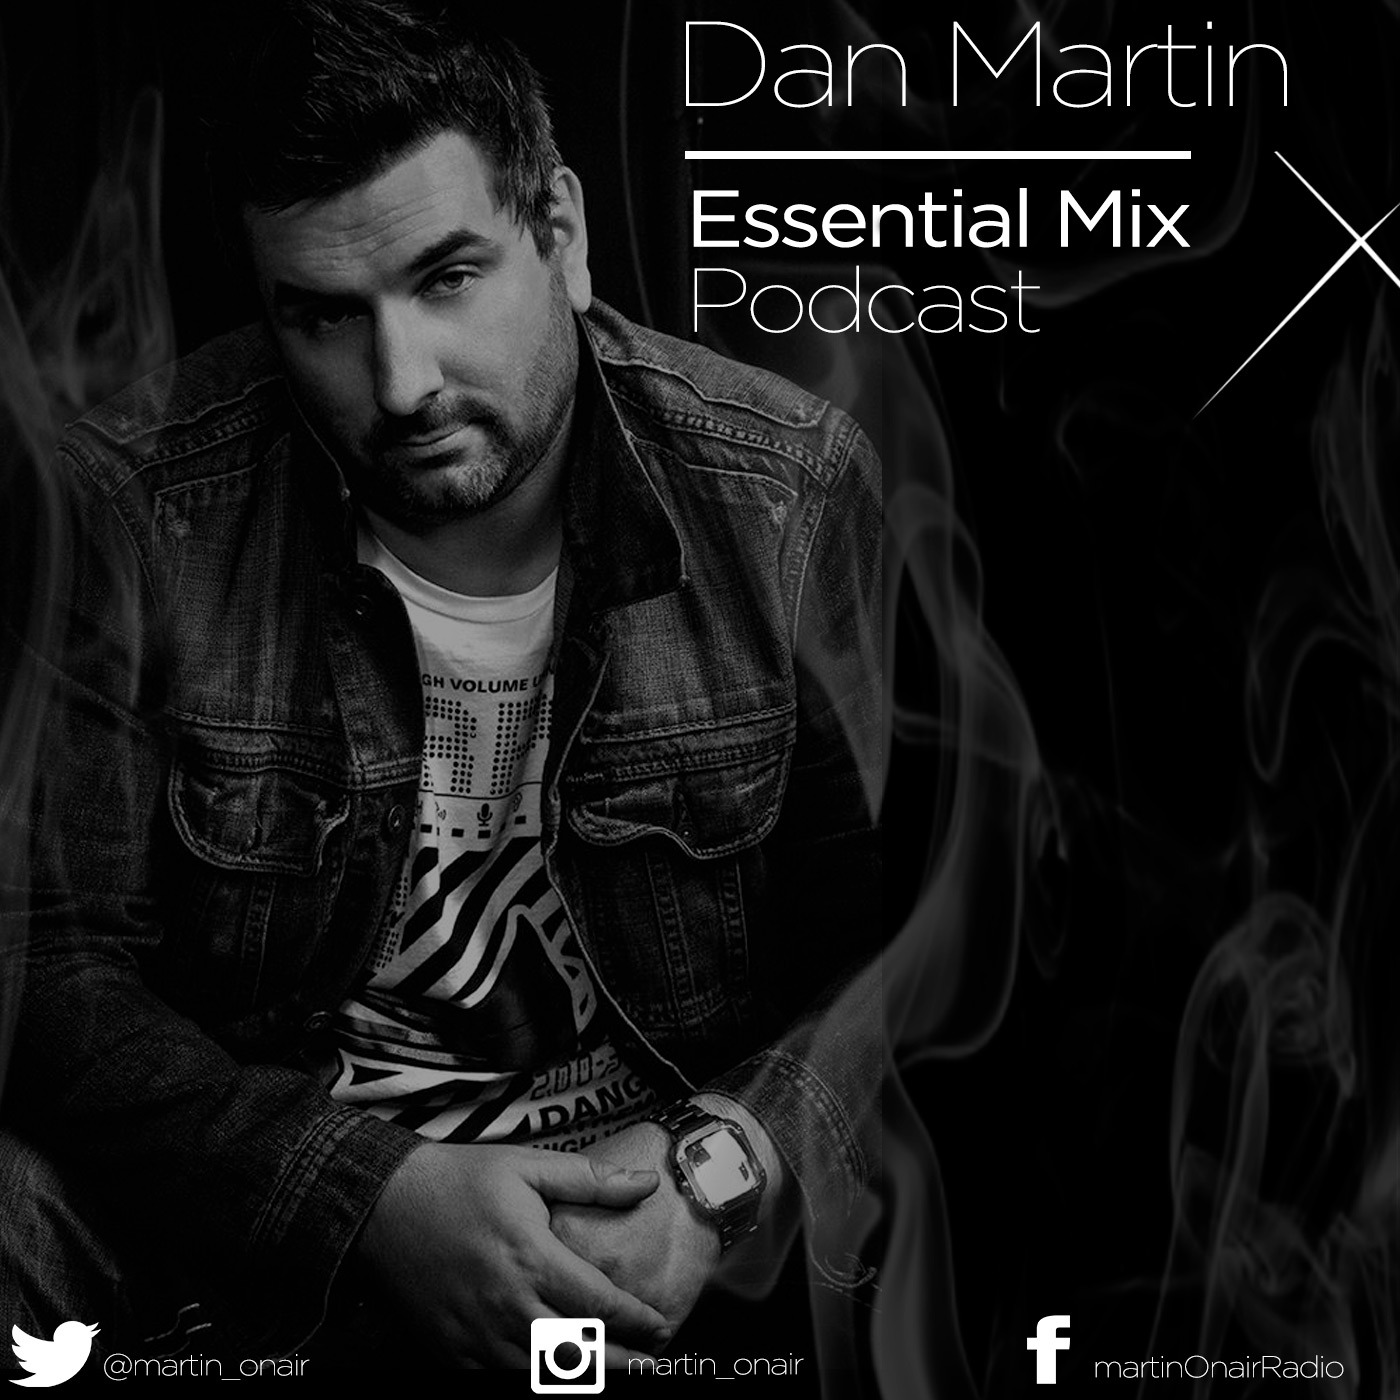 Dan Martin Essential Mix Podcast